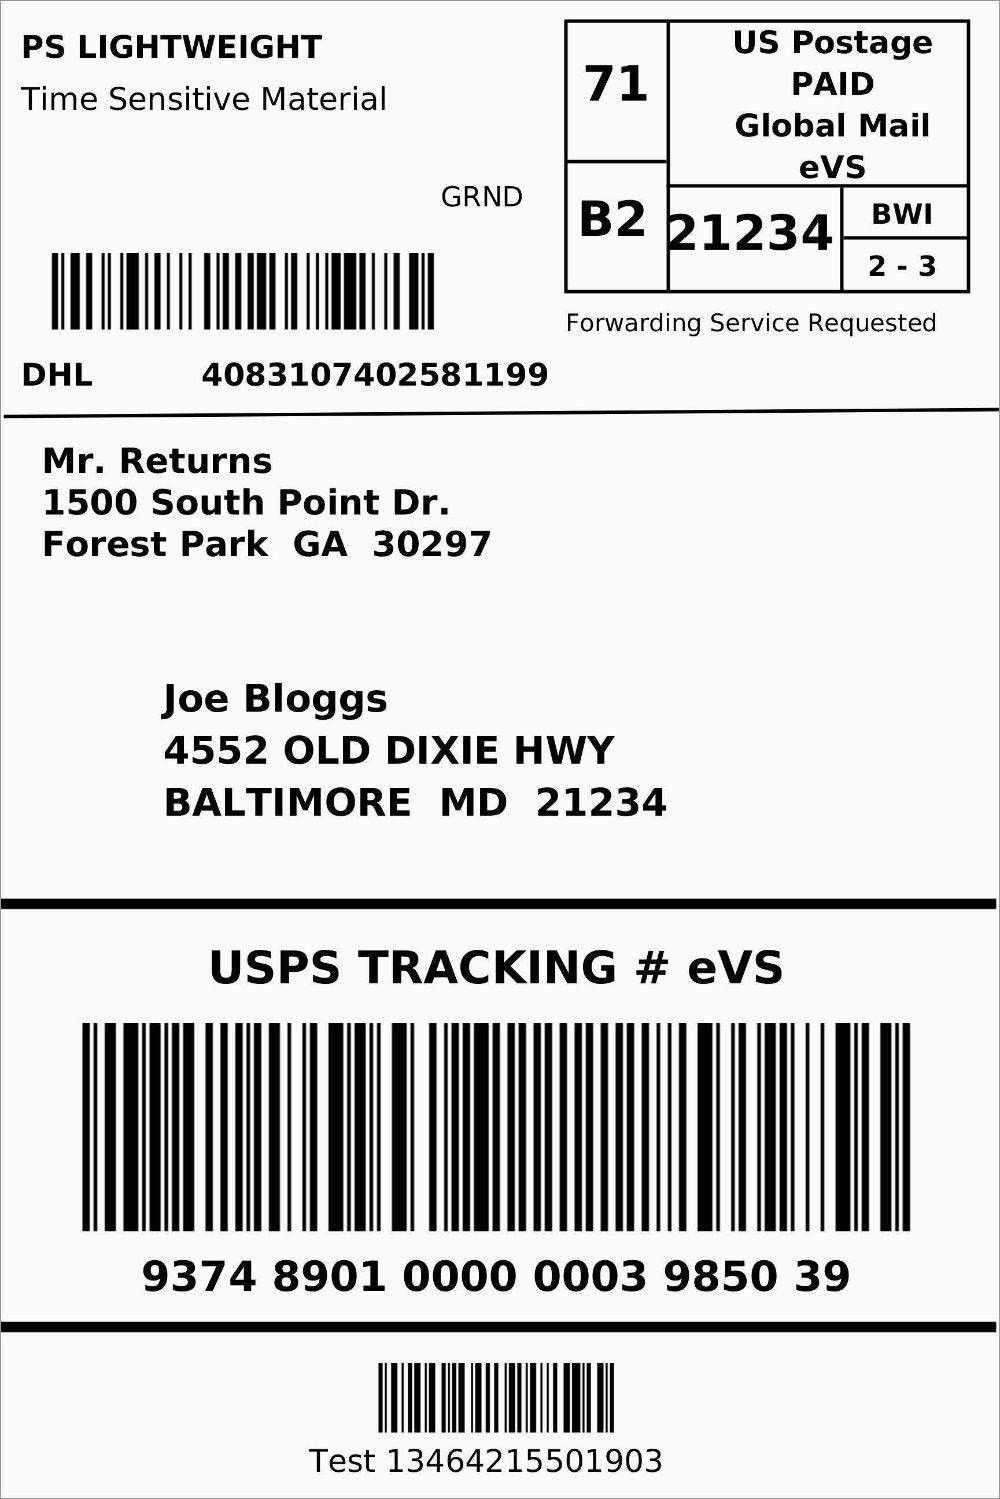 002 Amazing Free Shipping Label Template Image  Format Word For MacFull